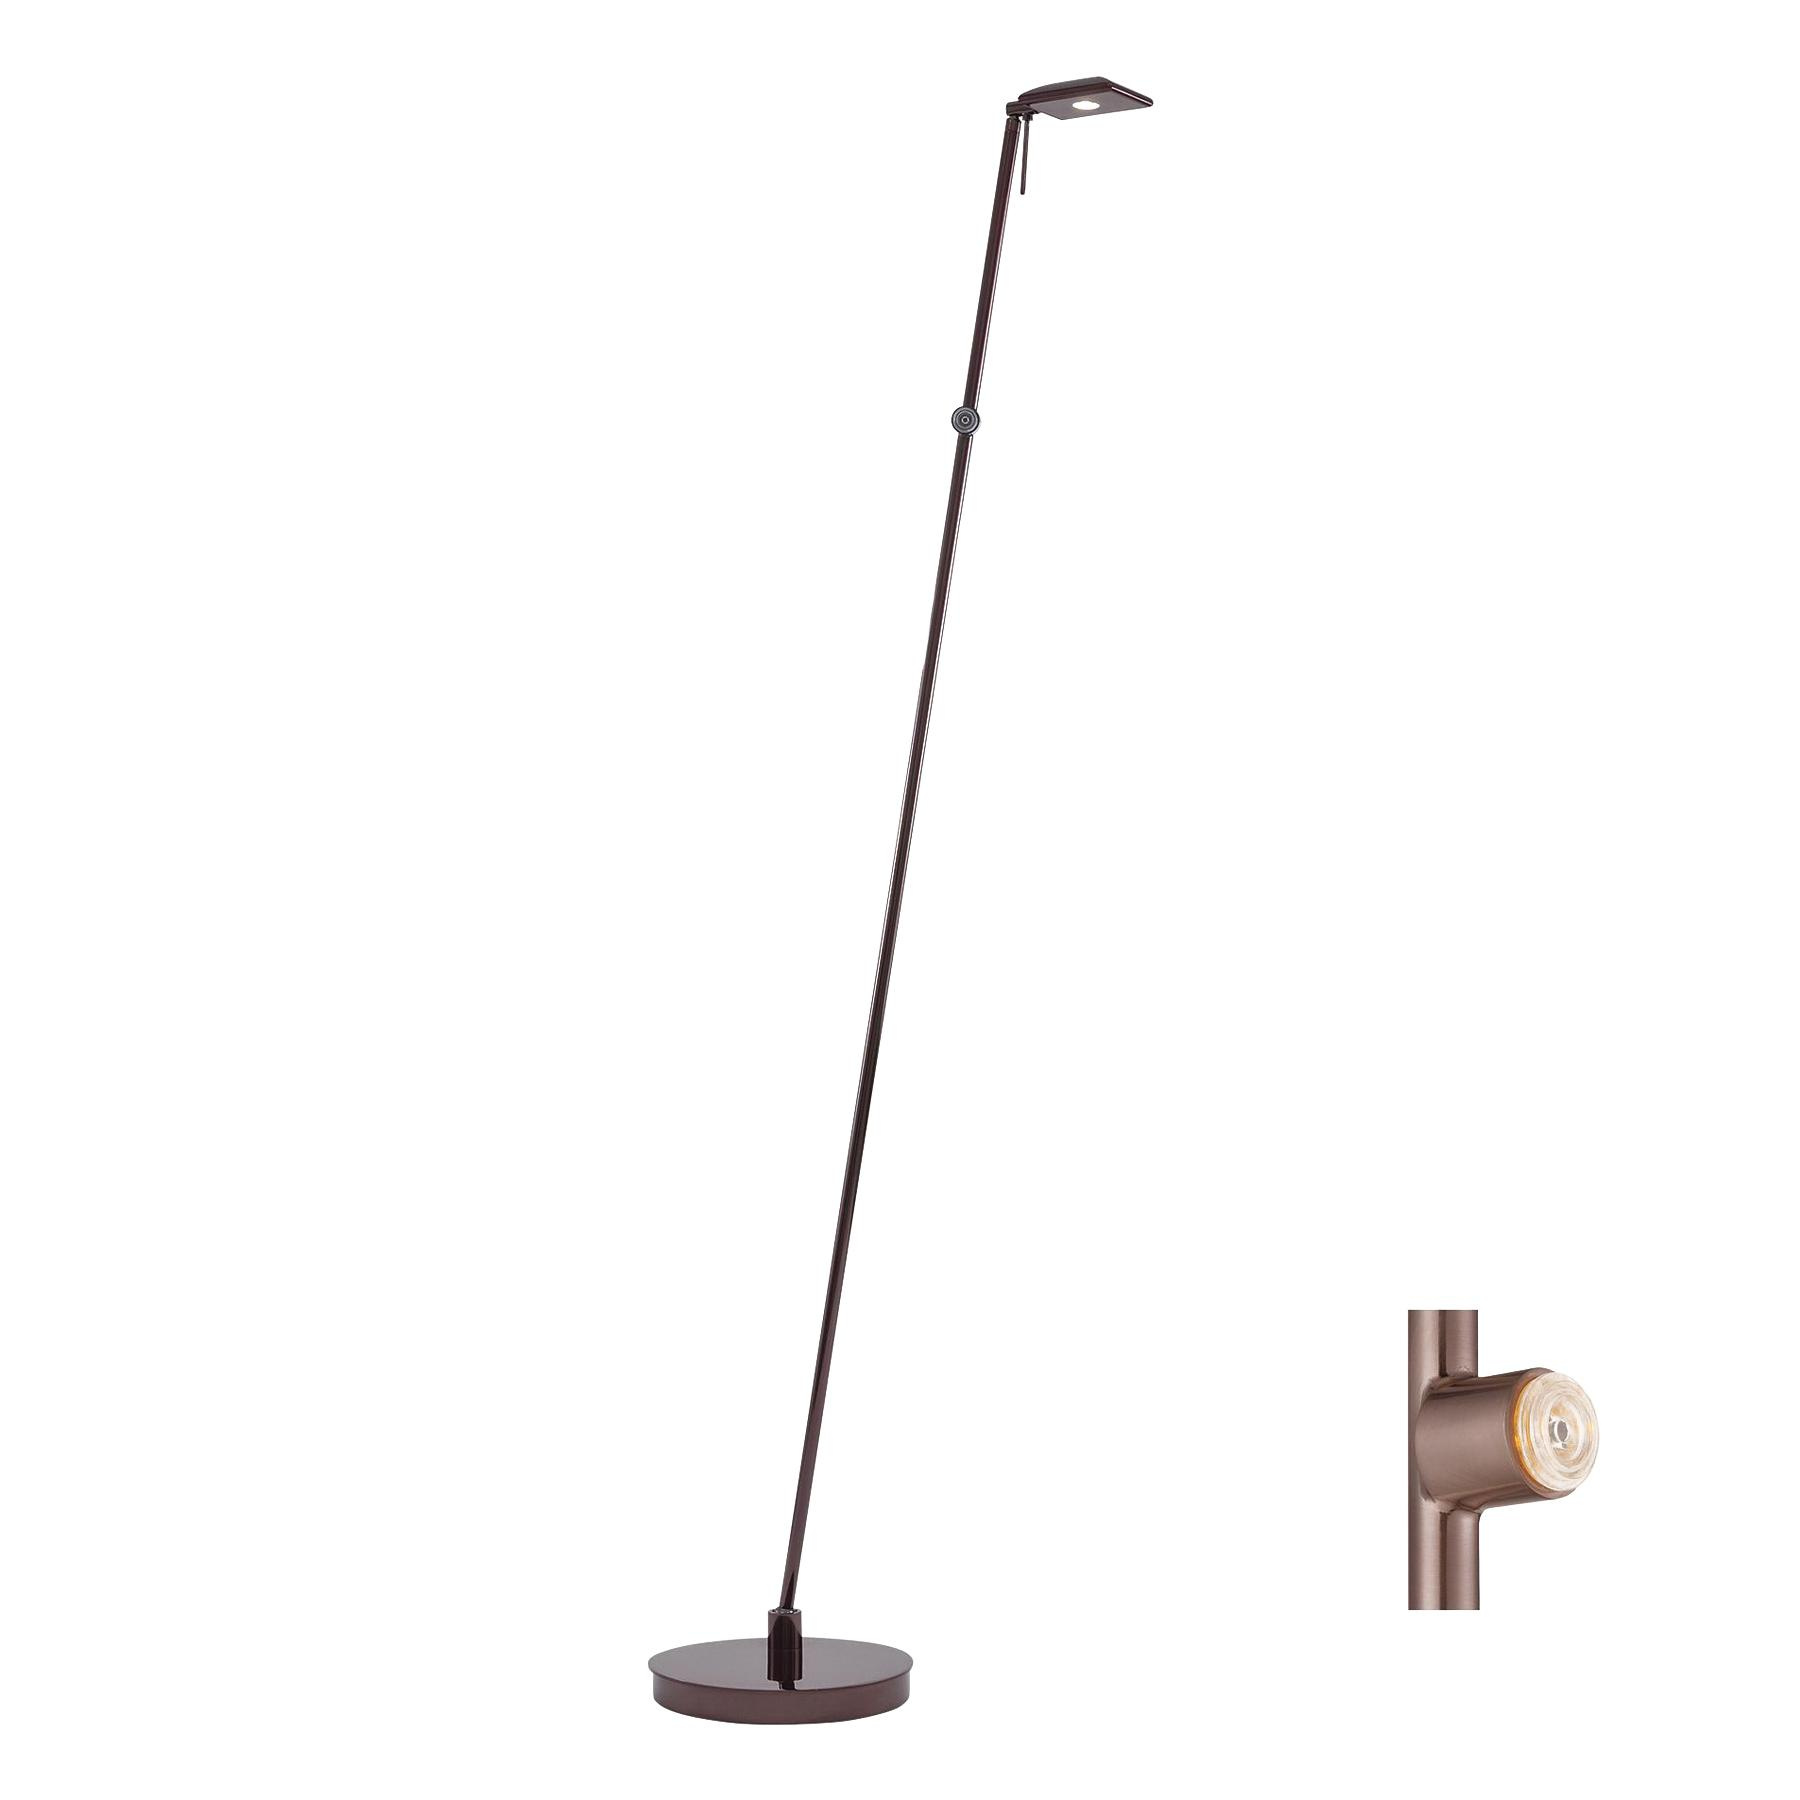 George kovacs p4324 631 modern 1 light led pharmacy floor lamp 8 george kovacs p4324 631 modern 1 light led pharmacy floor lamp 8 watt chocolate aloadofball